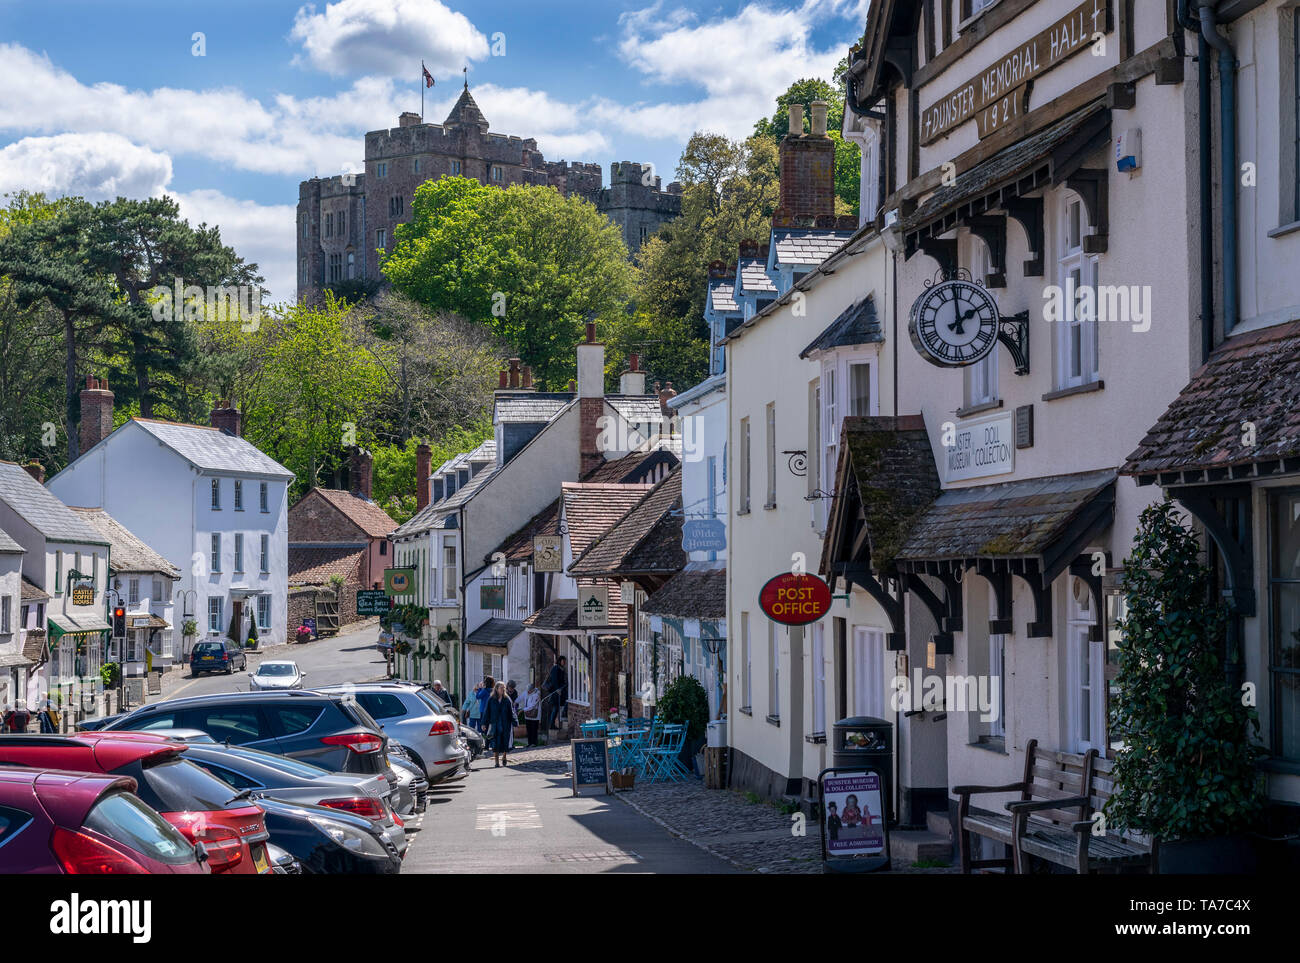 Dunster Village in Somerset, England UK with Dunster Castle in the background - Stock Image